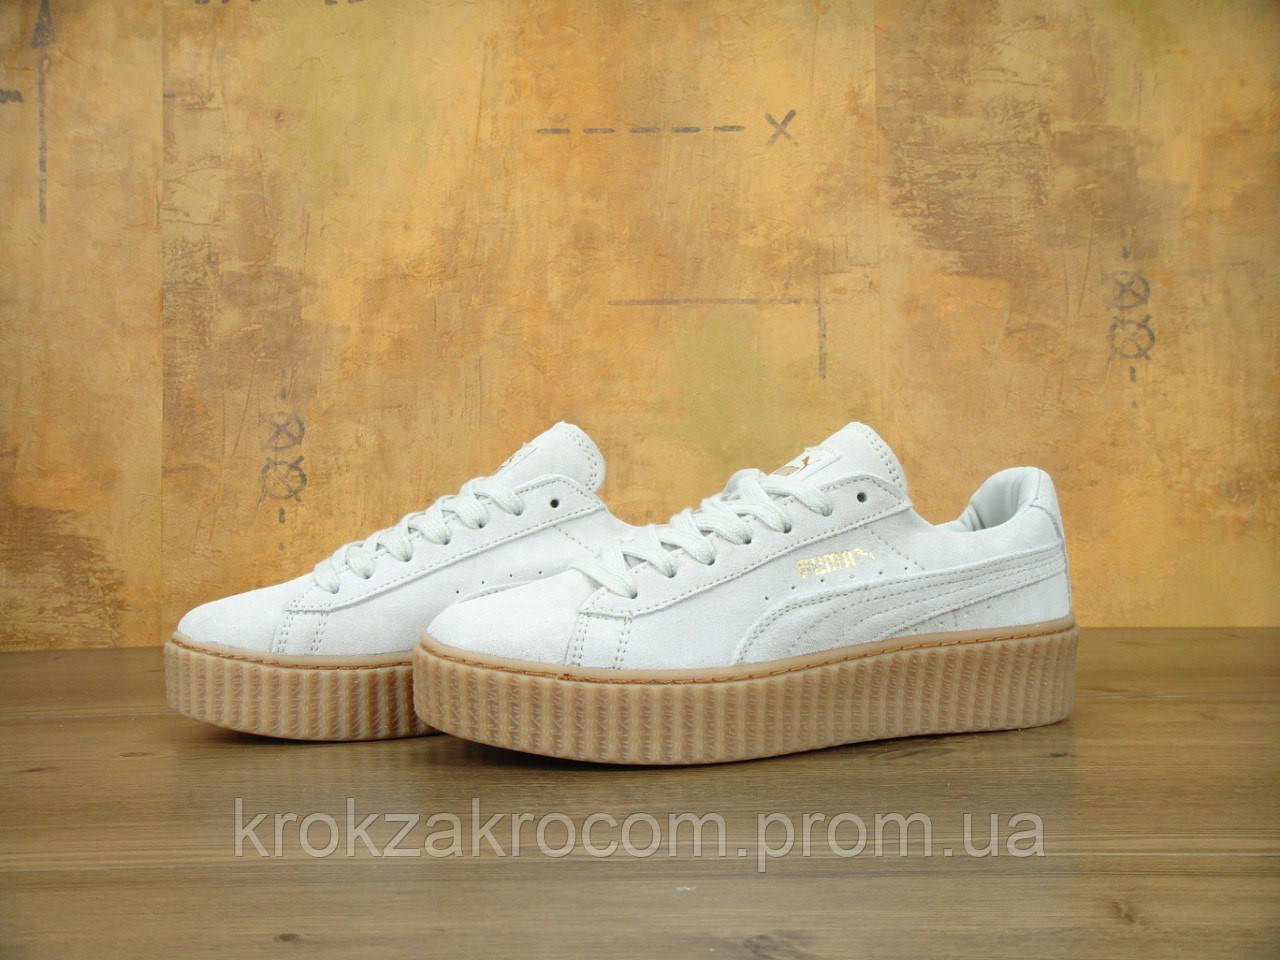 low priced 5a12f 5b38f Кроссовки Puma Creepers by Rihanna replica AAA